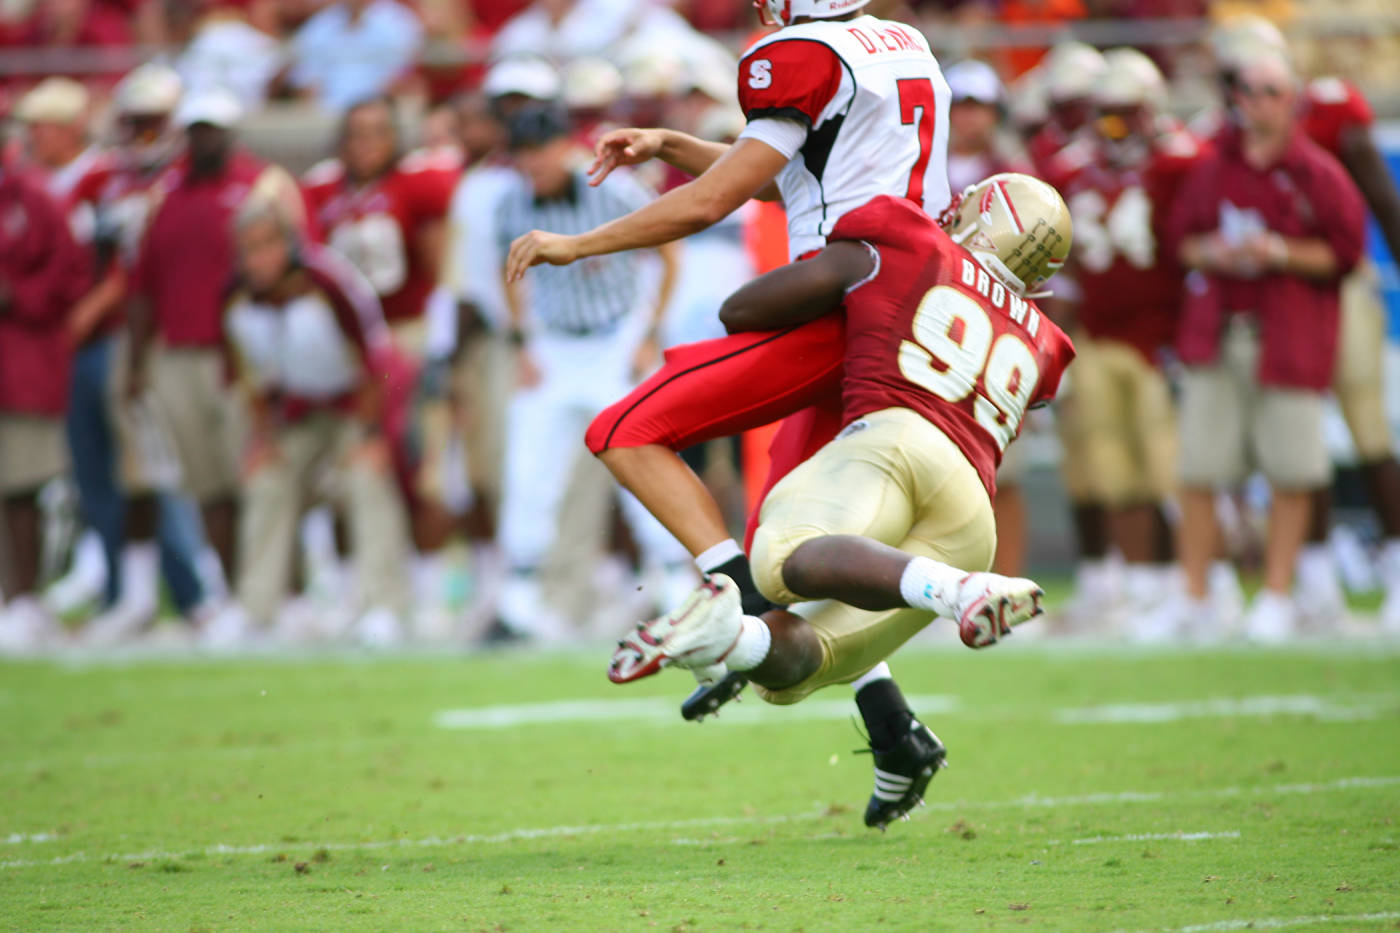 Everette Brown vs. NC State